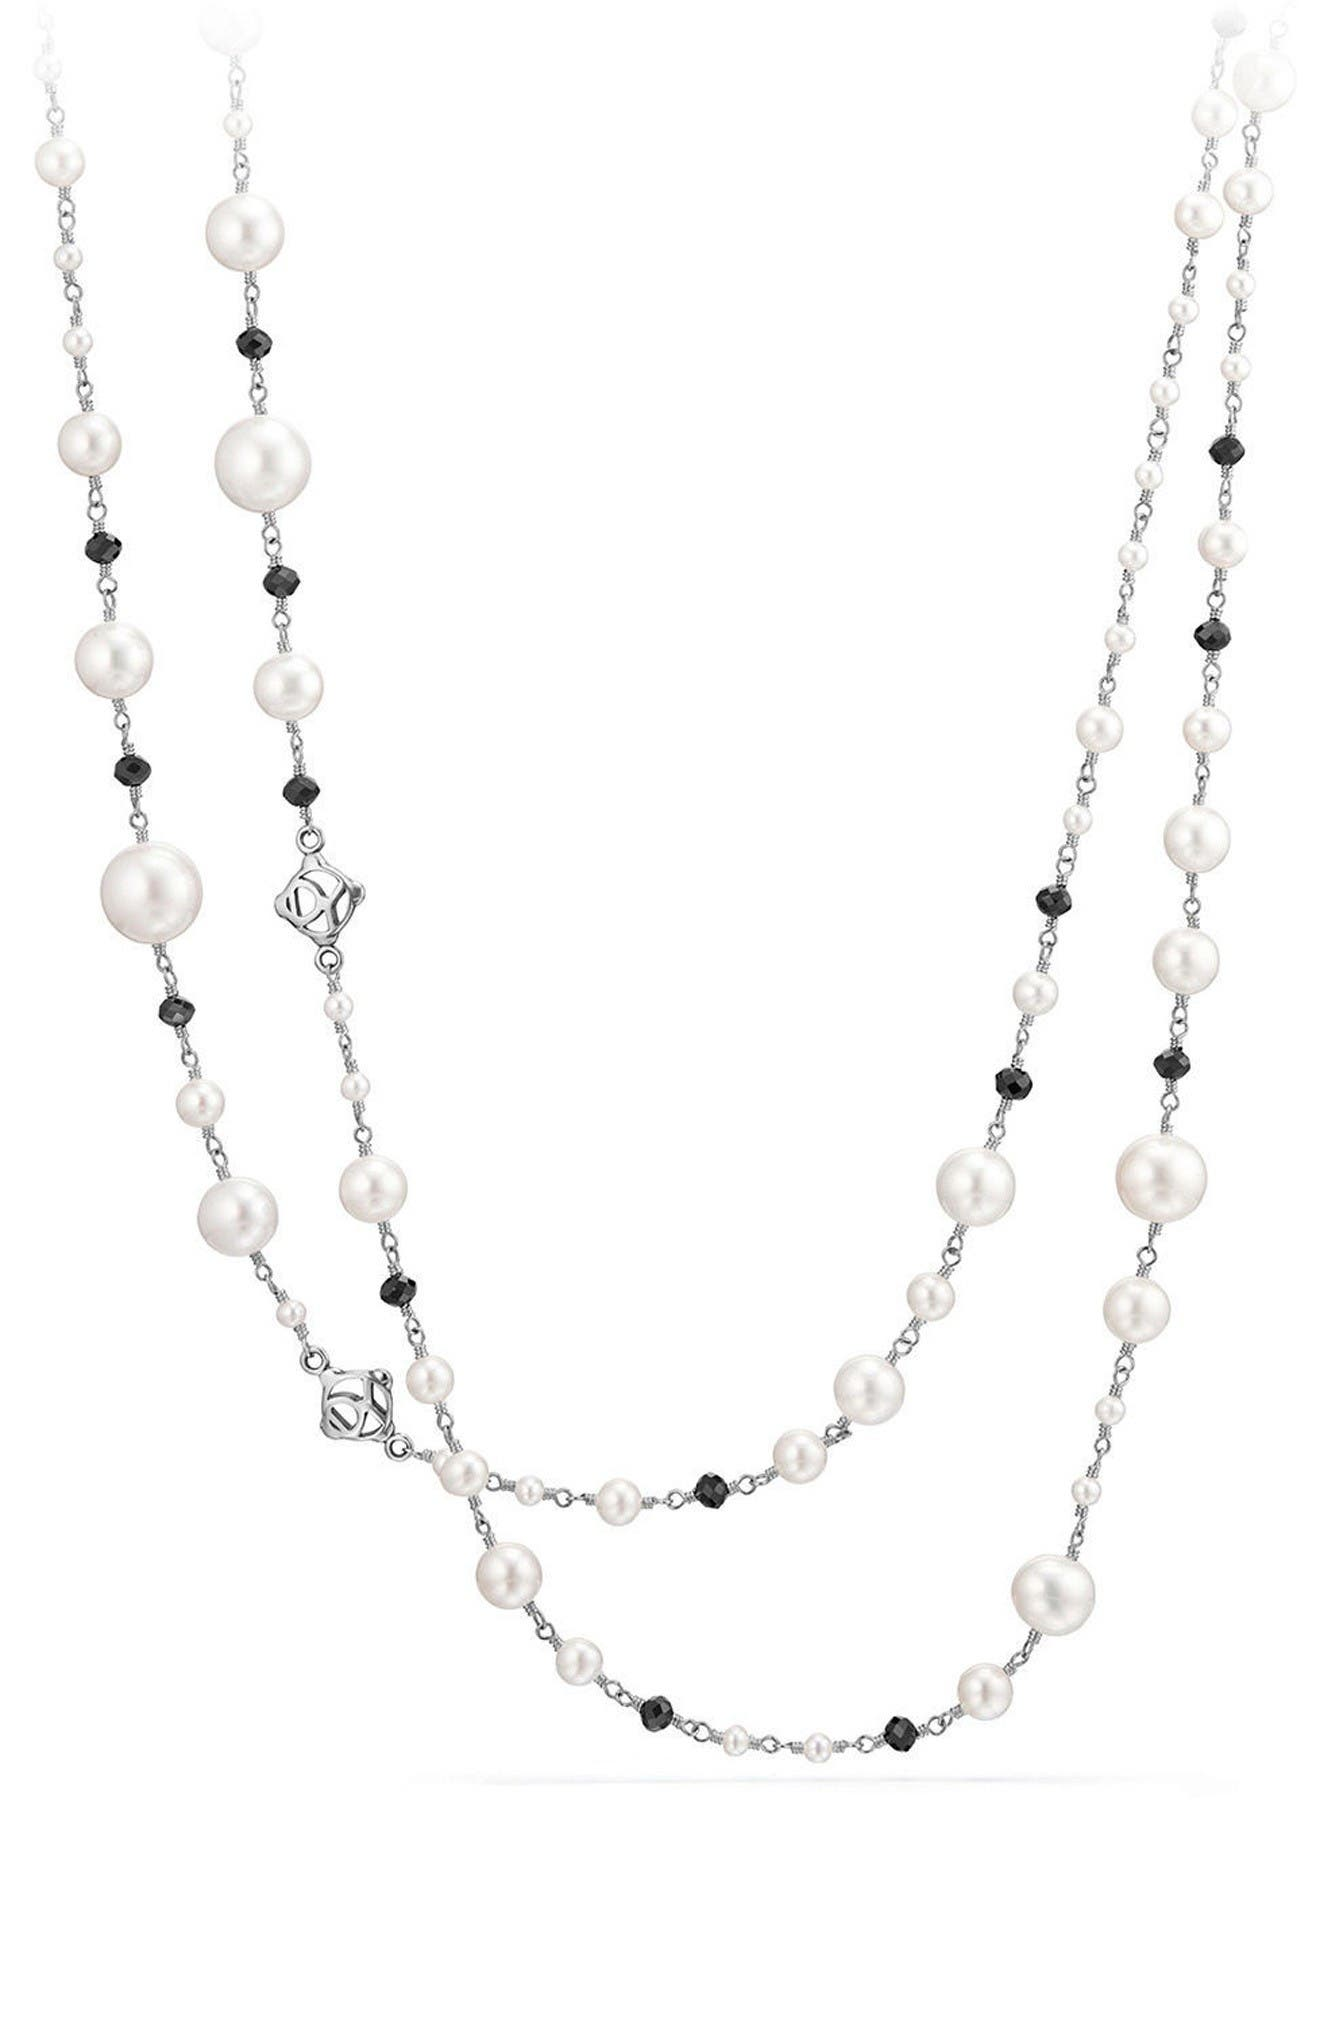 Main Image - David Yurman Solari Pearl & Bead Necklace